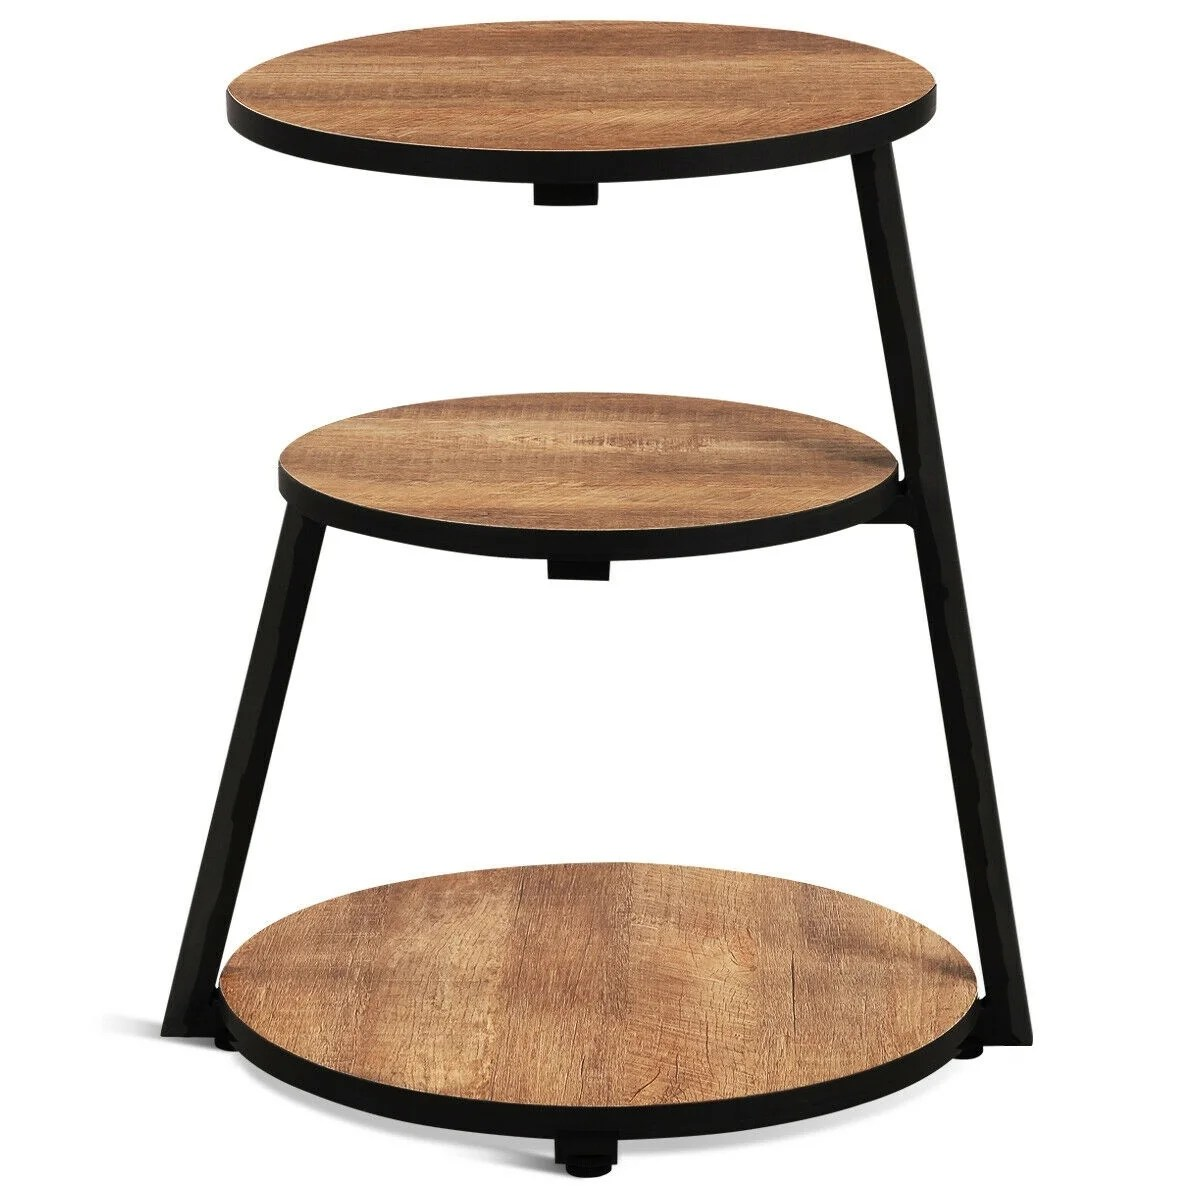 Shop Round 3 Tier Sofa Side Table Pictured On Sale Overstock 31808448